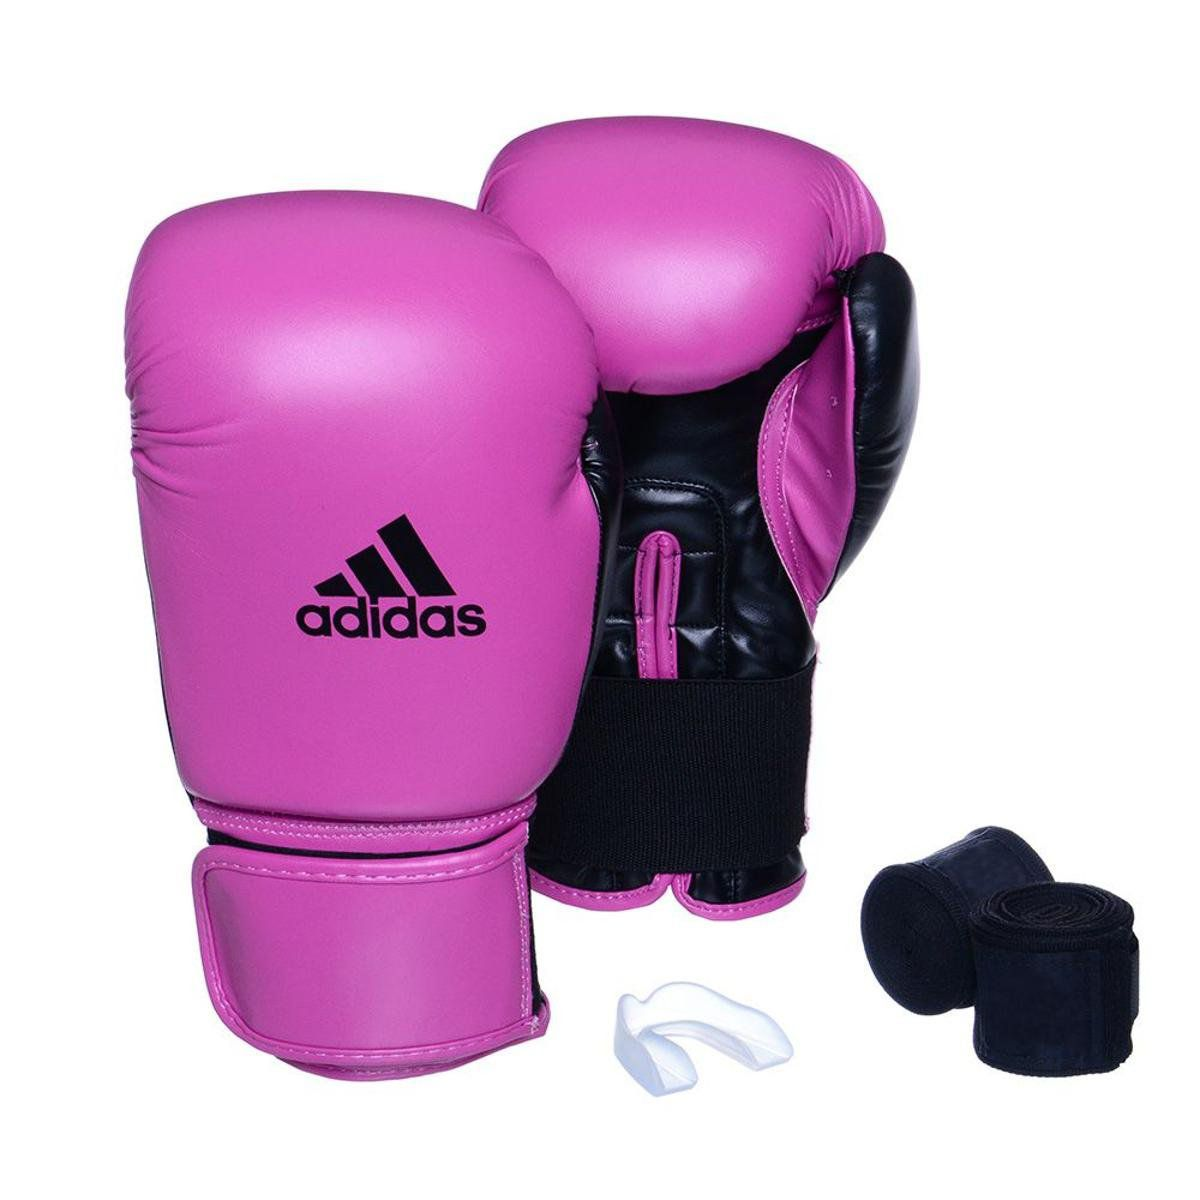 Kit Luvas Boxe / Muay Thai - Adidas Power 100 - Rosa - 10/12/14 OZ